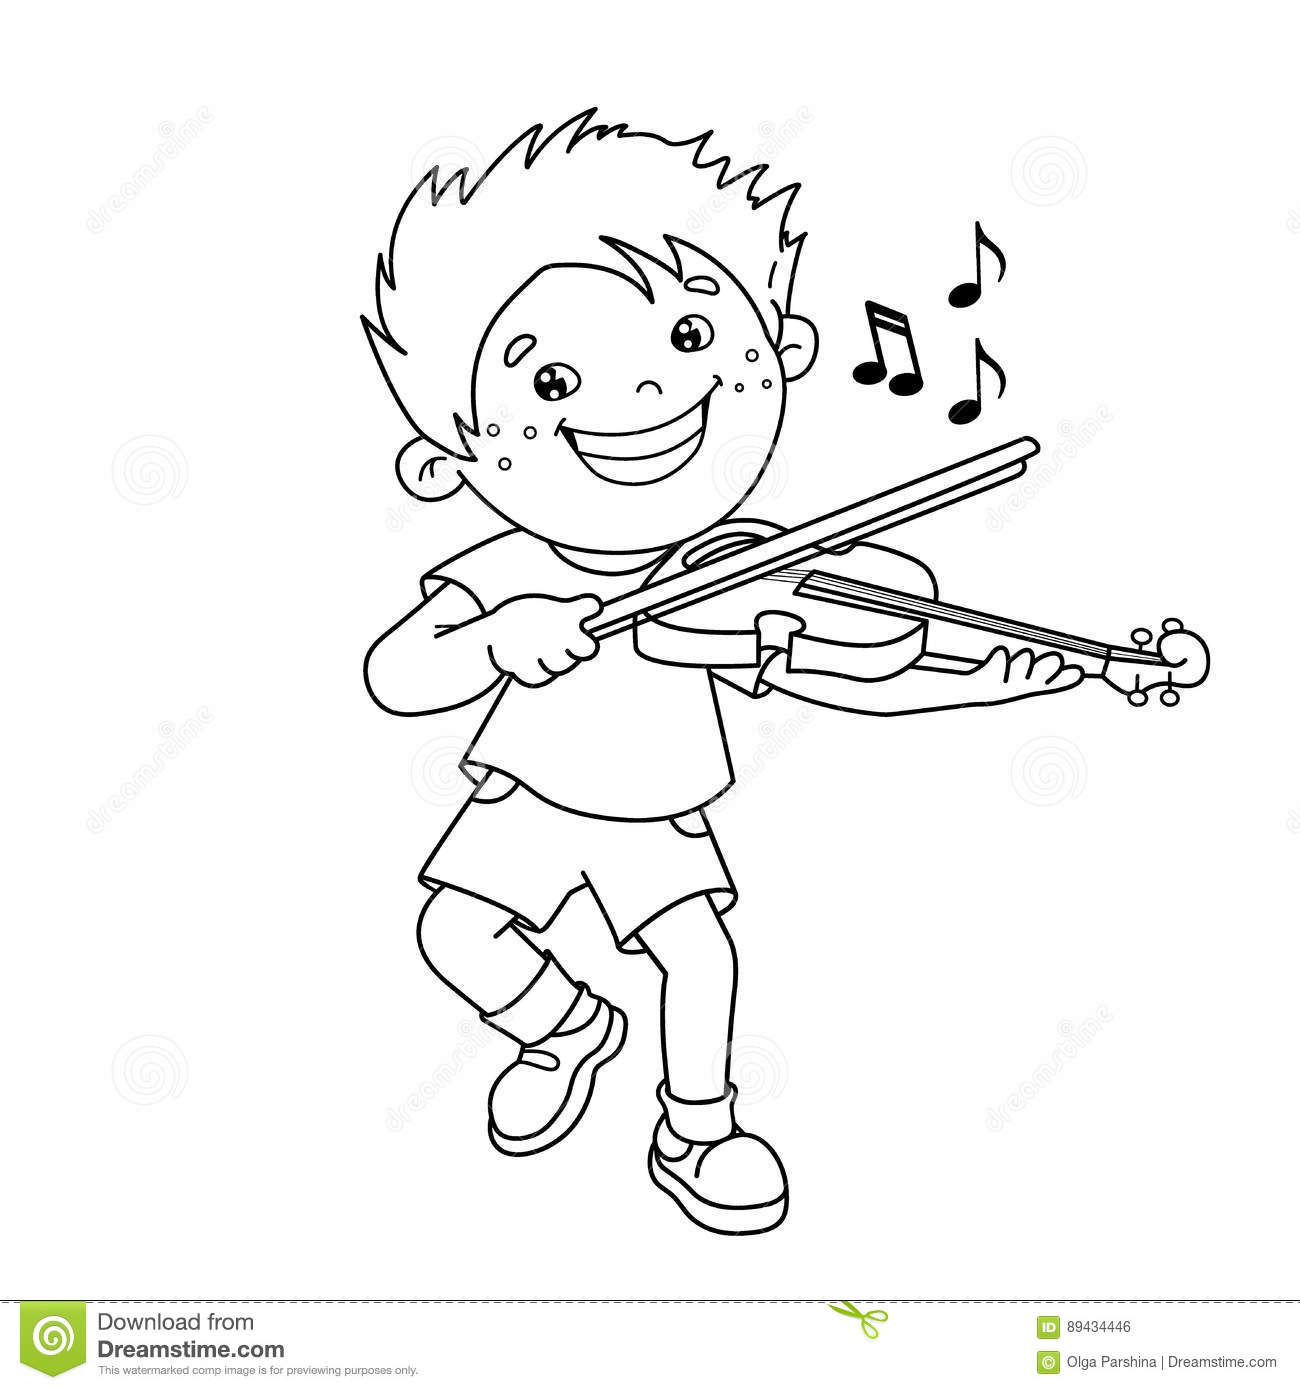 violin outline drawing coloring page outline of cartoon boy playing the violin violin drawing outline